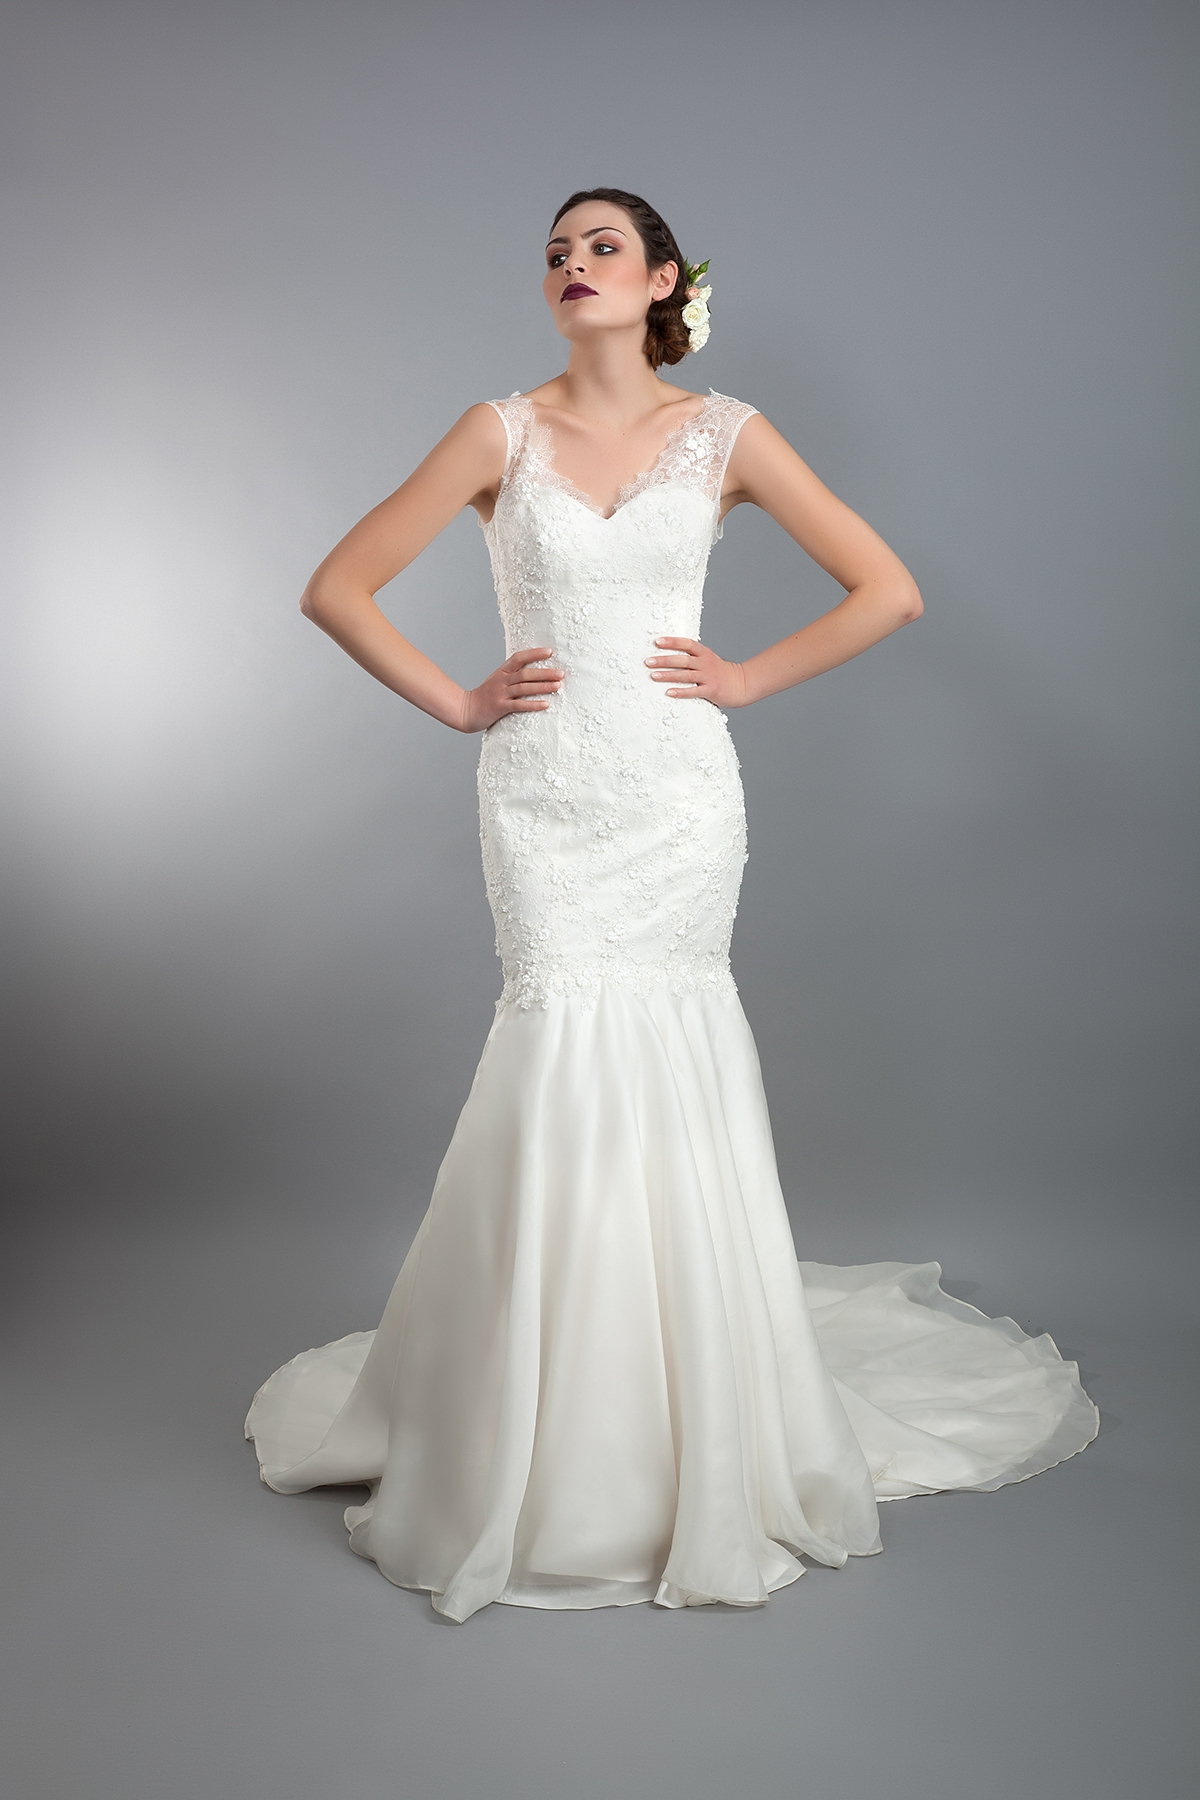 17570d93f77 Introducing Shanna Melville Bridal Couture – Timeless   Elegant Made ...